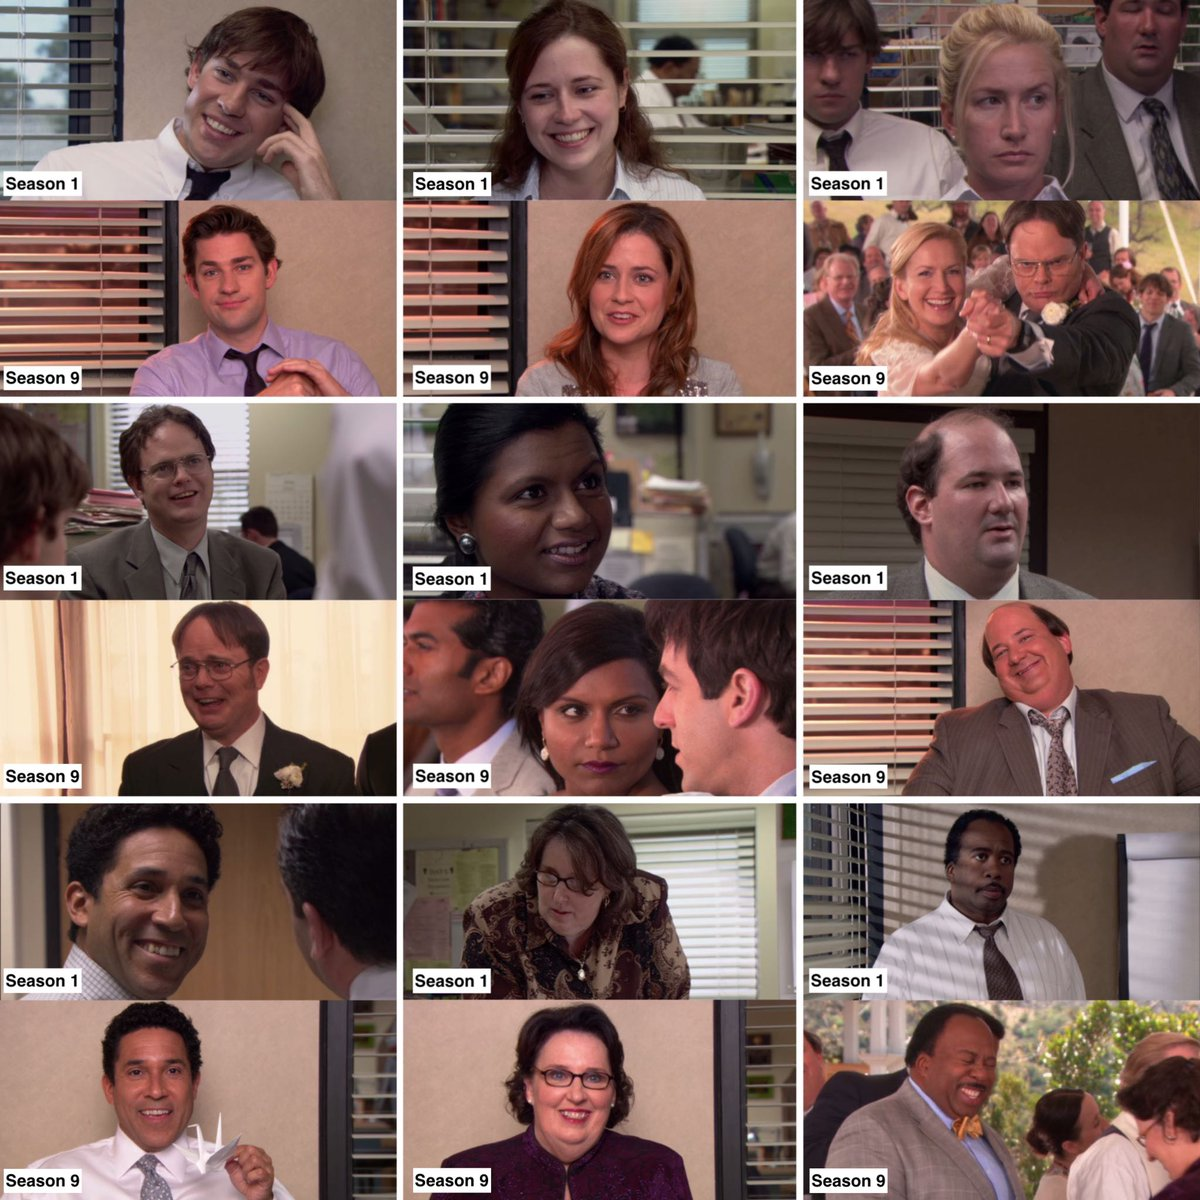 RT @theofficenbc: Happy #Office15 to the best people person's paper people we could ask for. https://t.co/98kJ0Ab84v